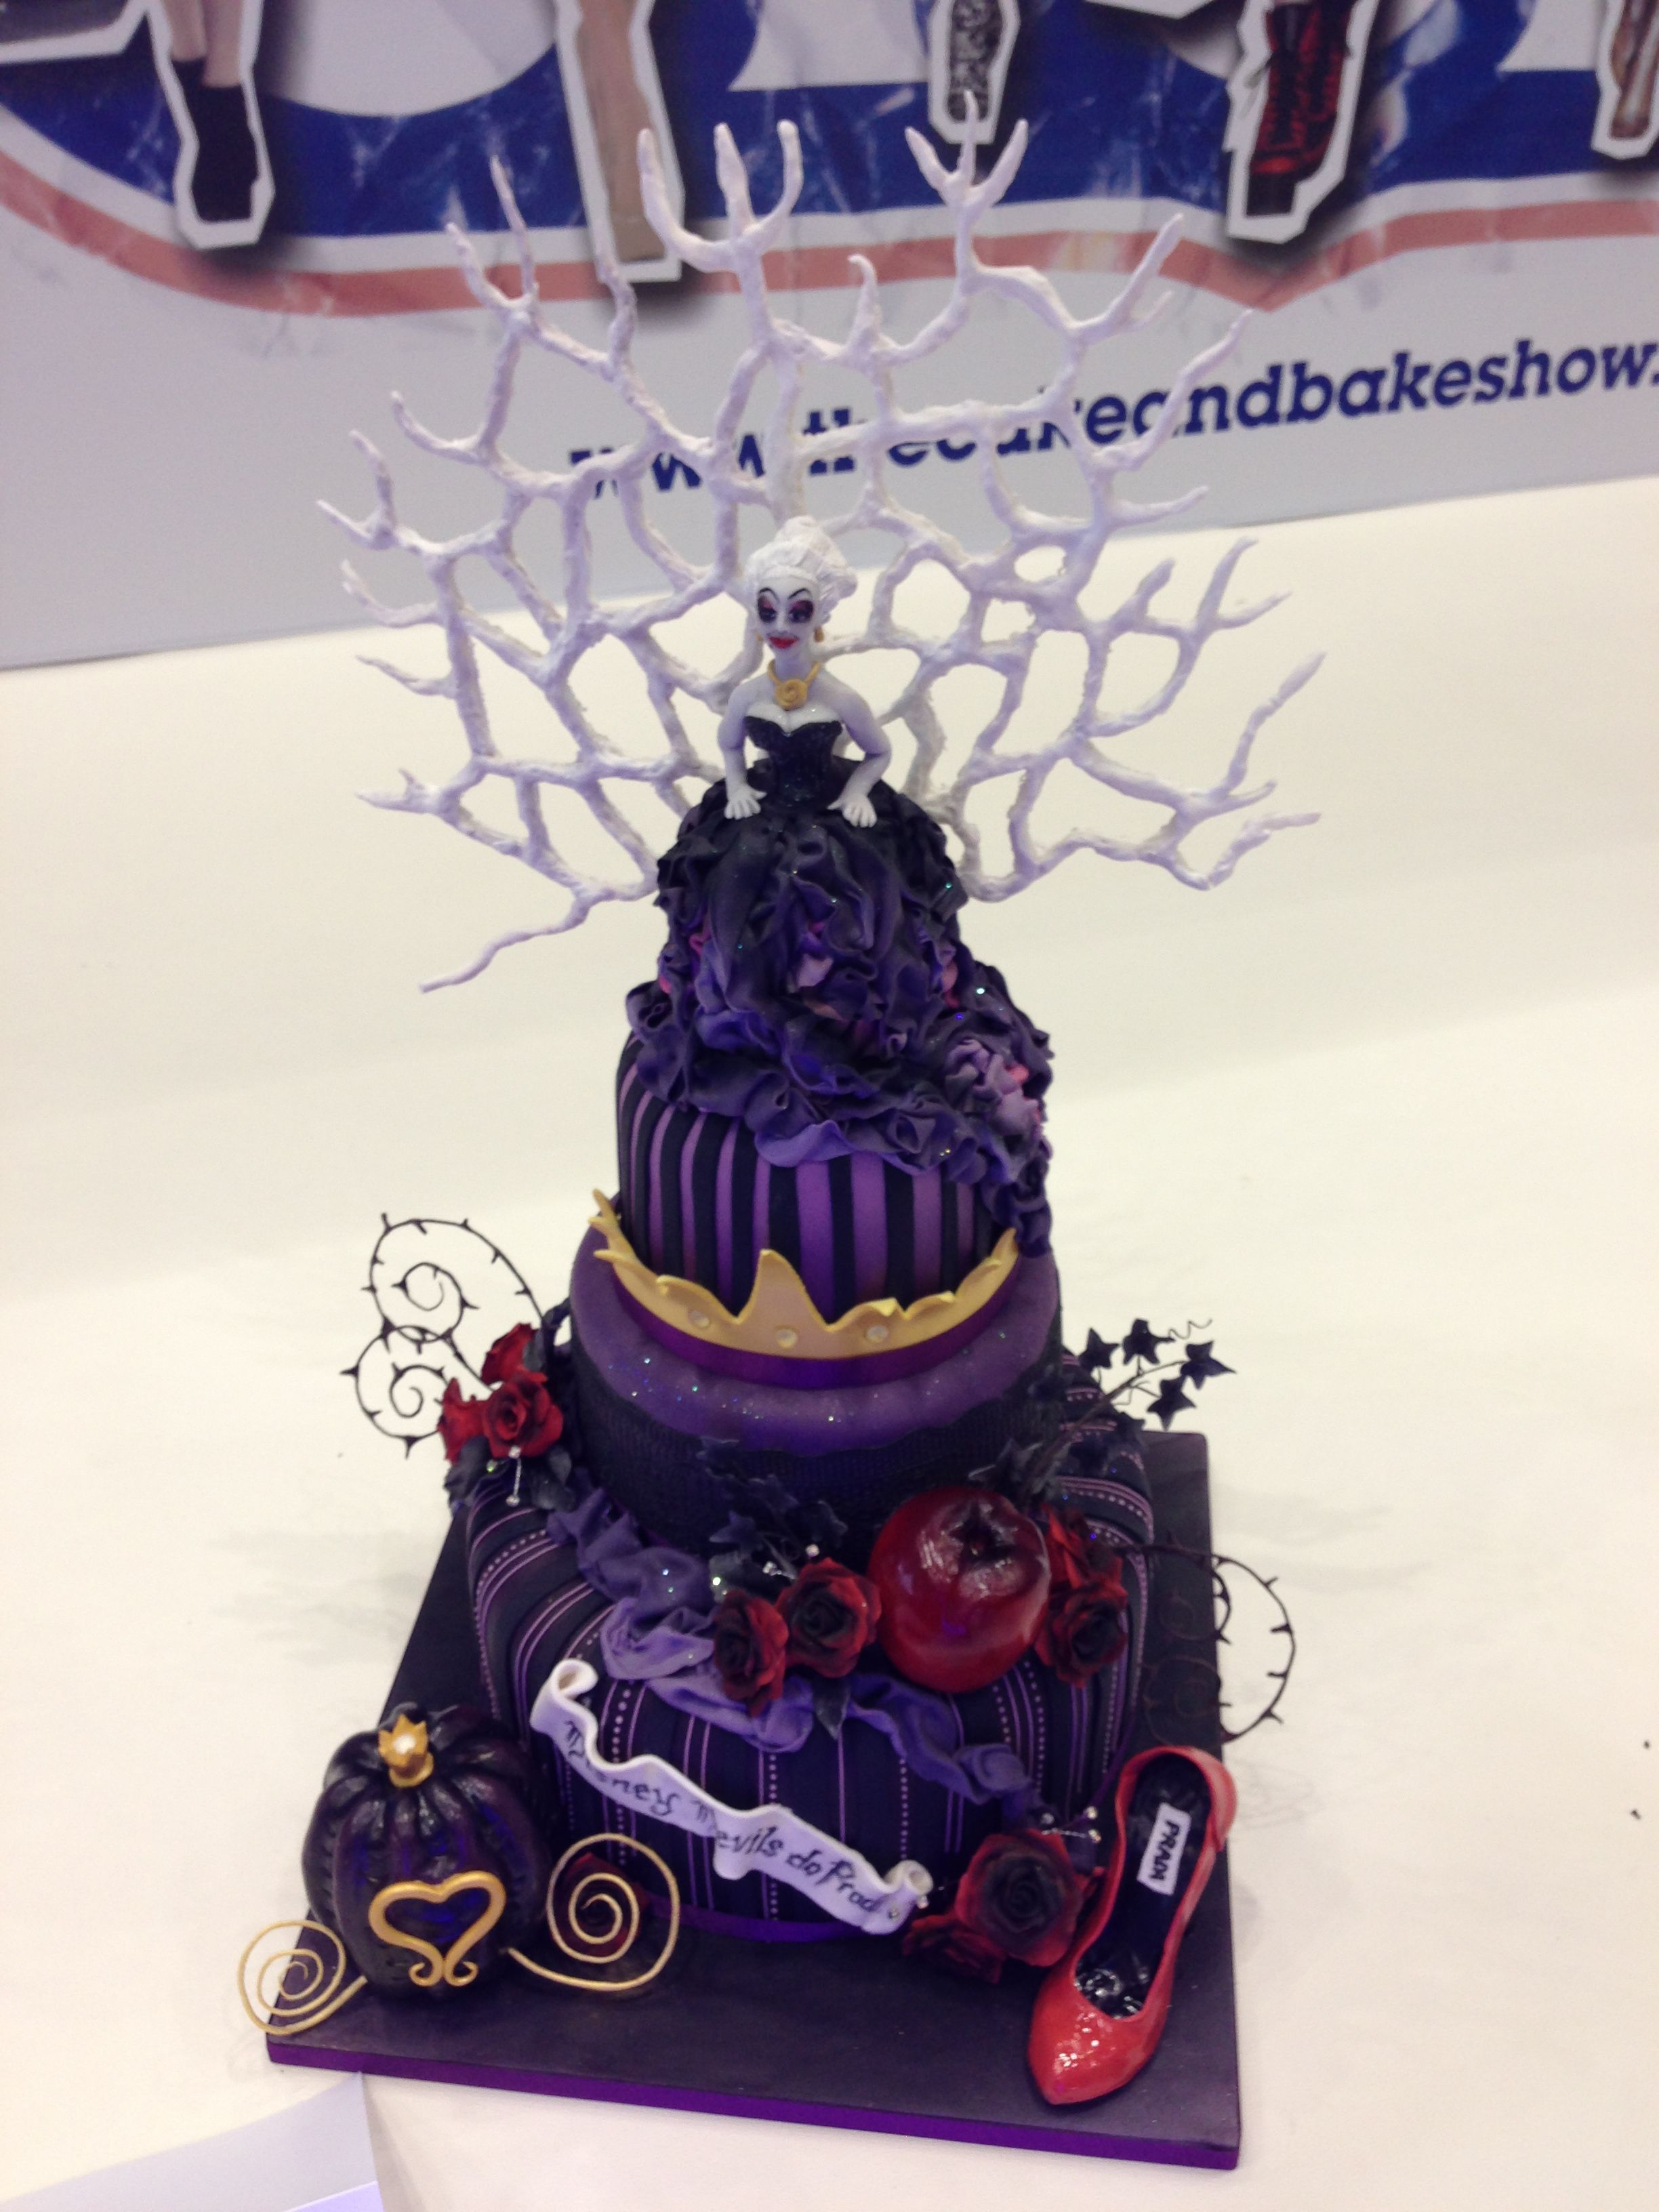 Google theme winner - Cake Catwalk Competition S Winner In The Non Professional Category Vicki Smith For Her Wonderful